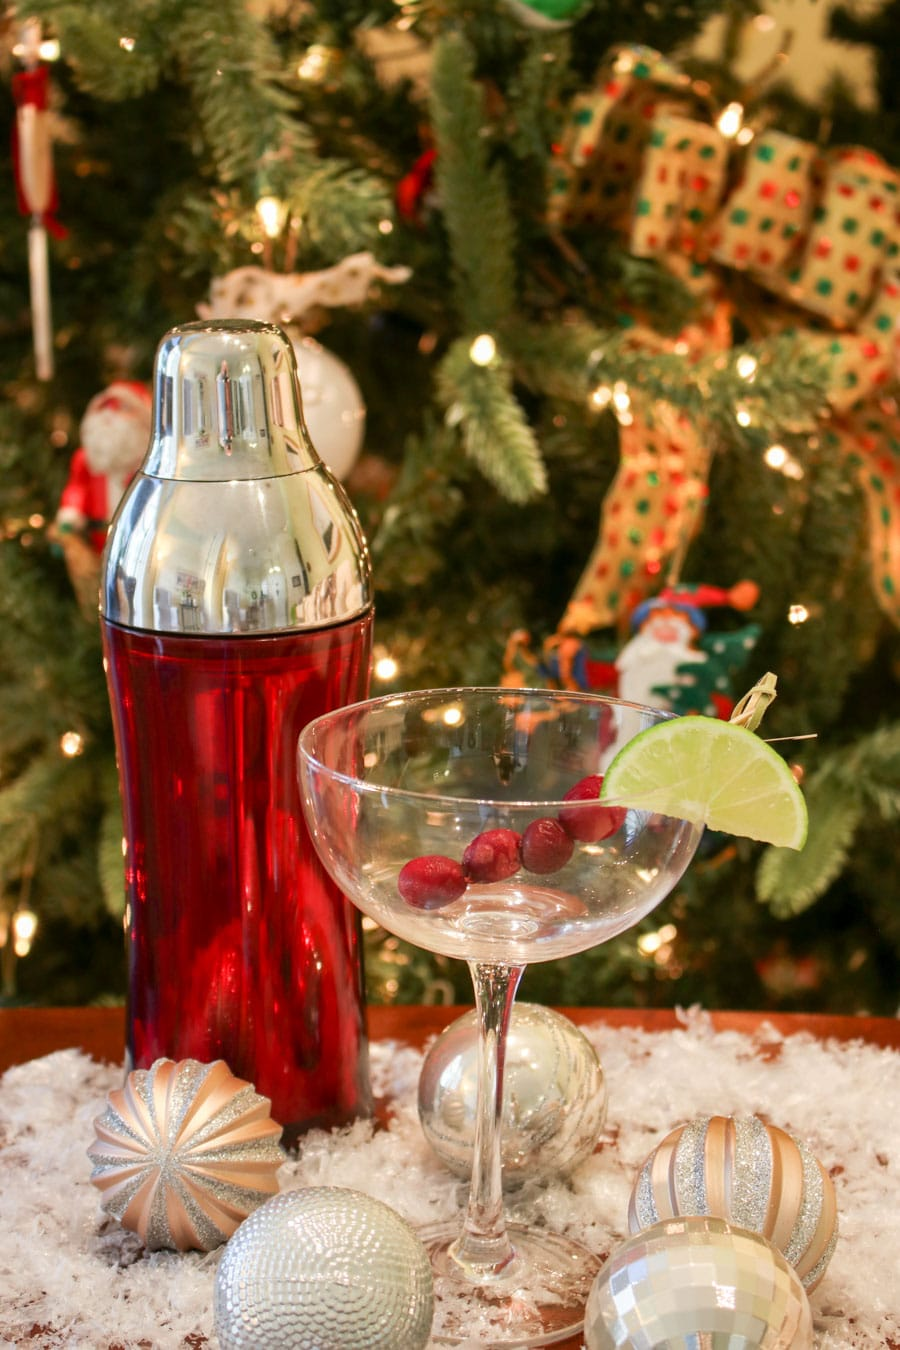 empty martini glass with a red shaker next to it. Christmas tree in the background.